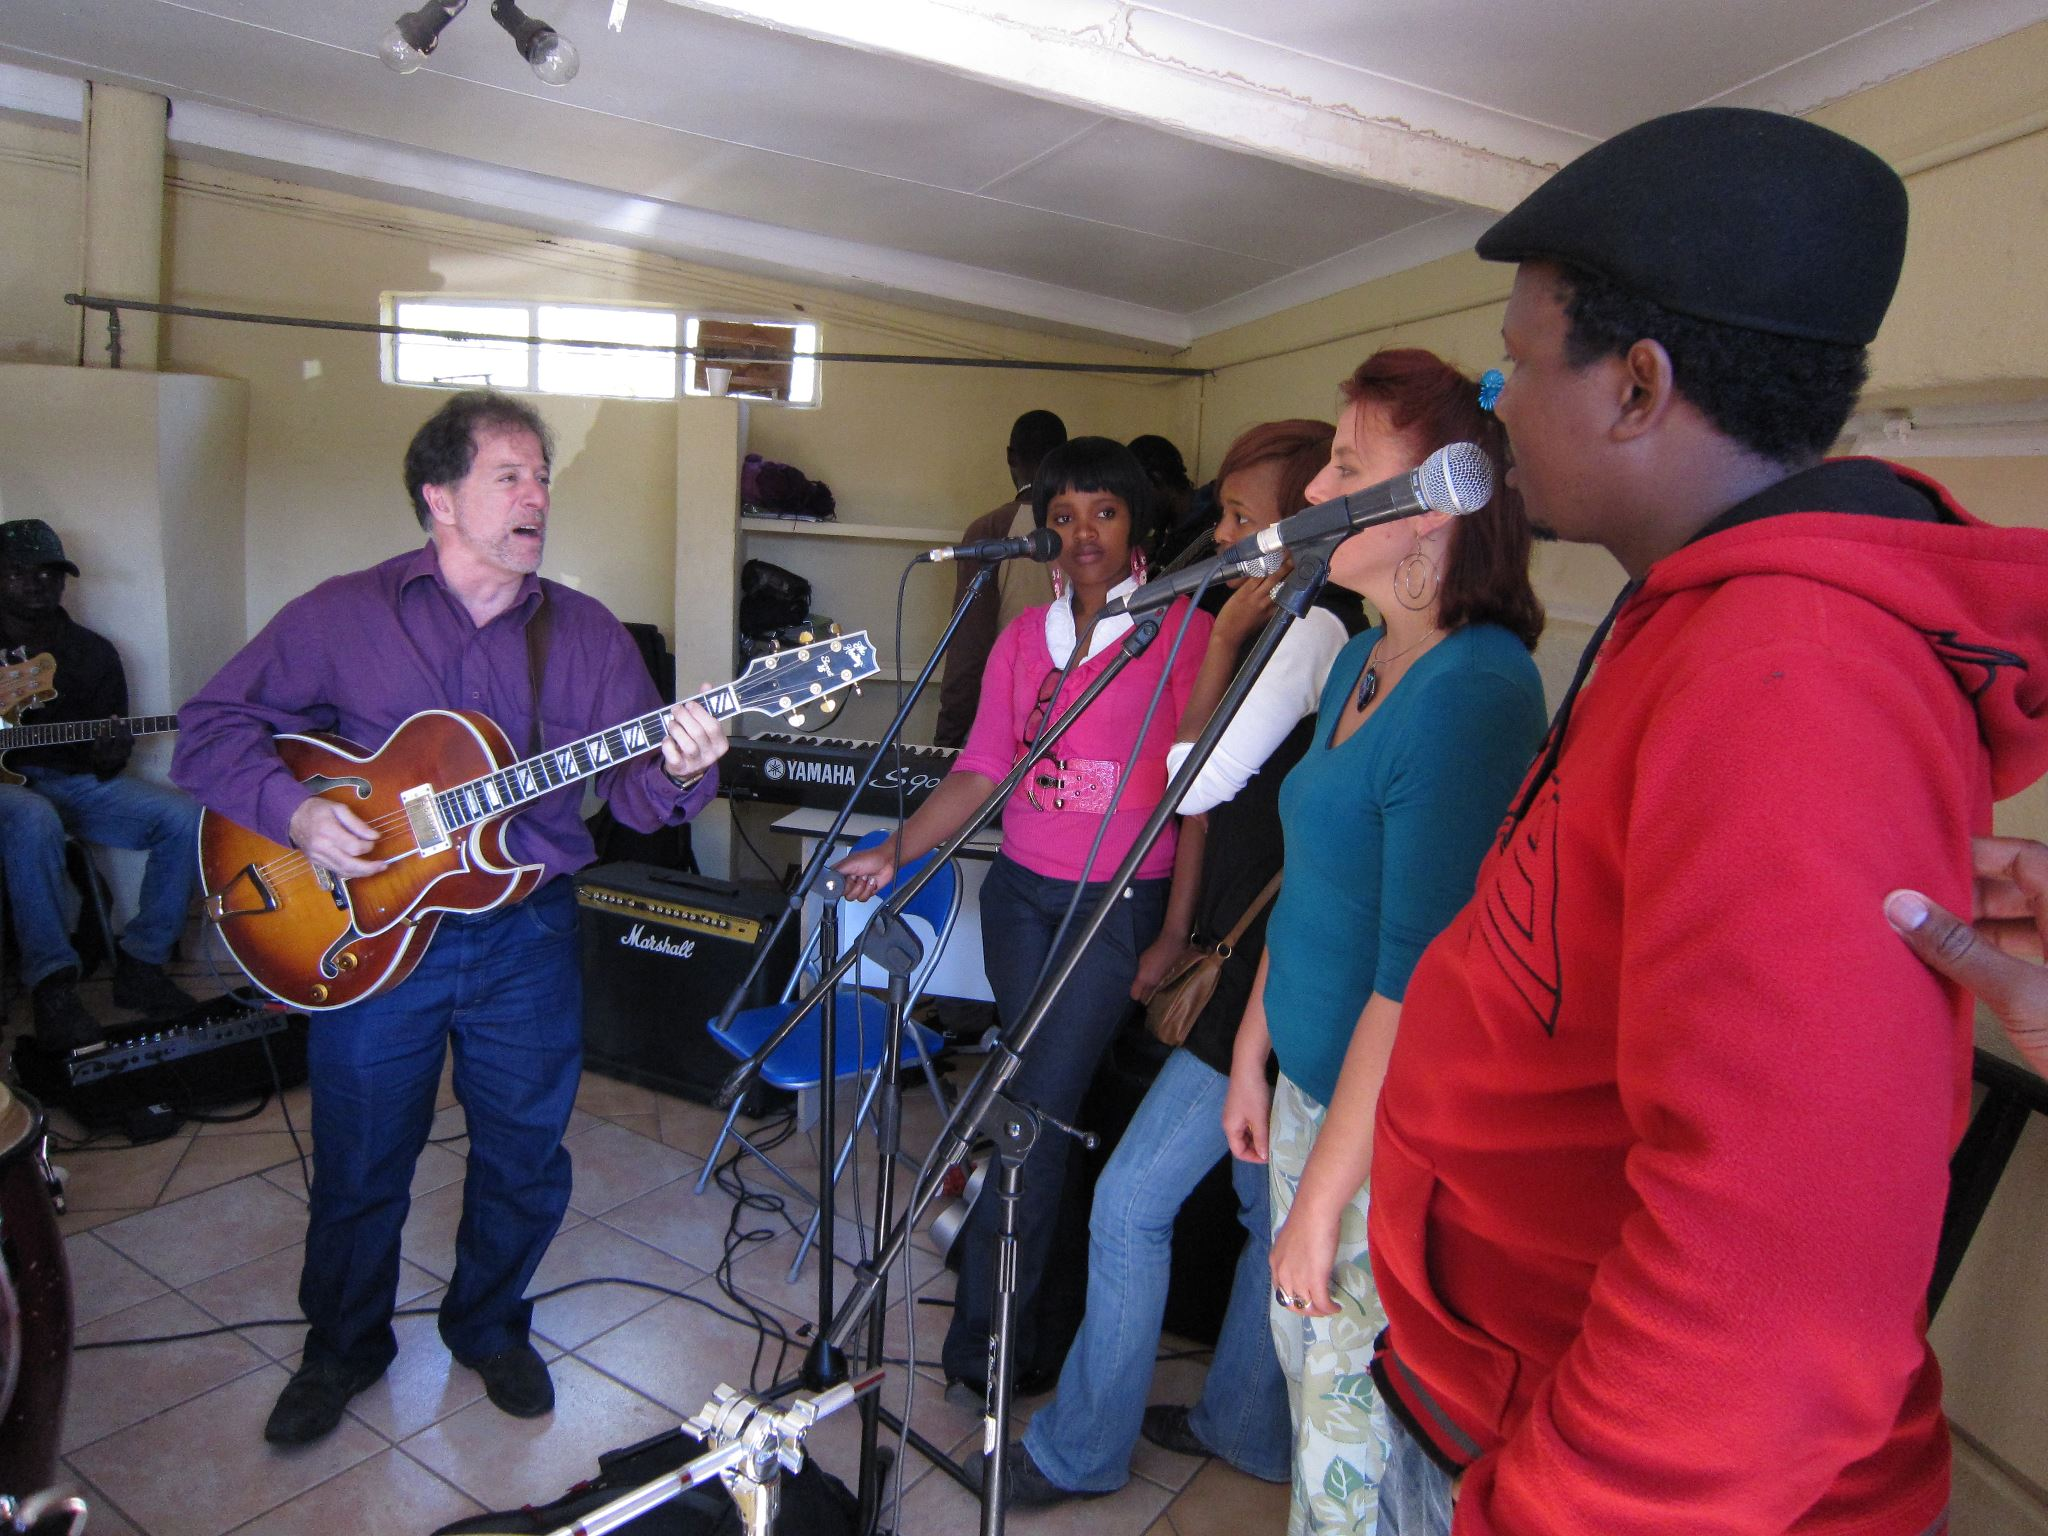 Rehearsal with Bholoja band